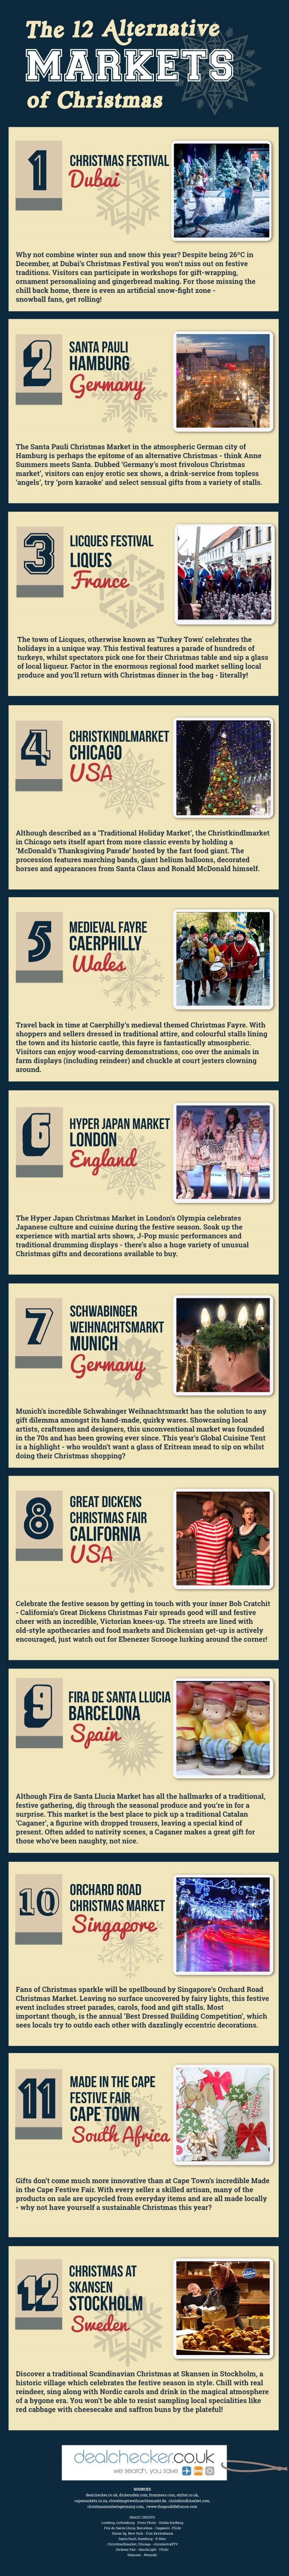 12 Alternative Christmas Markets Infographic